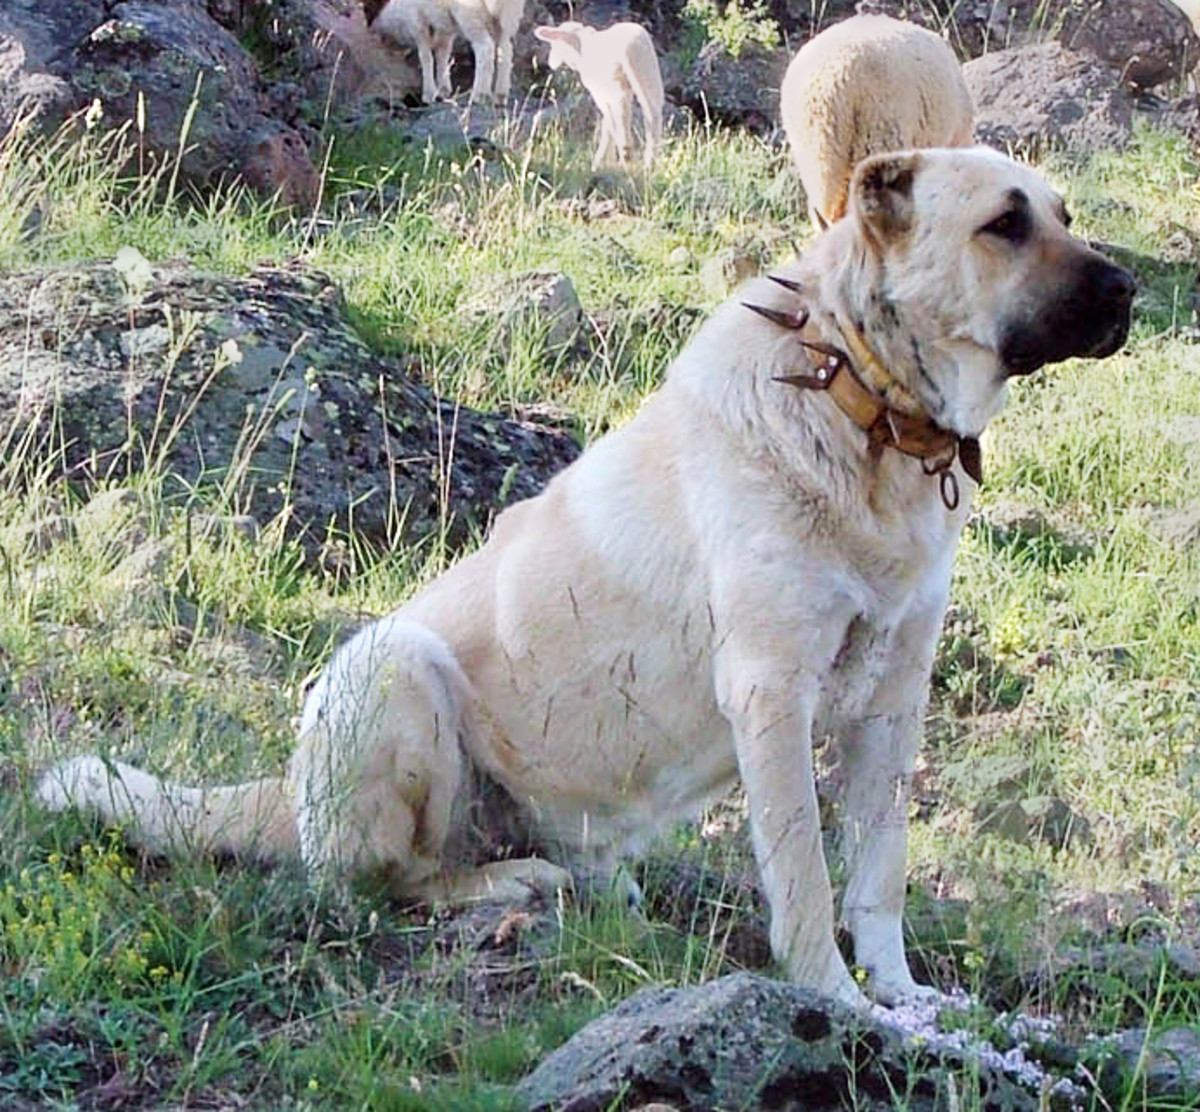 Noble Guard Dog and Protector of the Flock